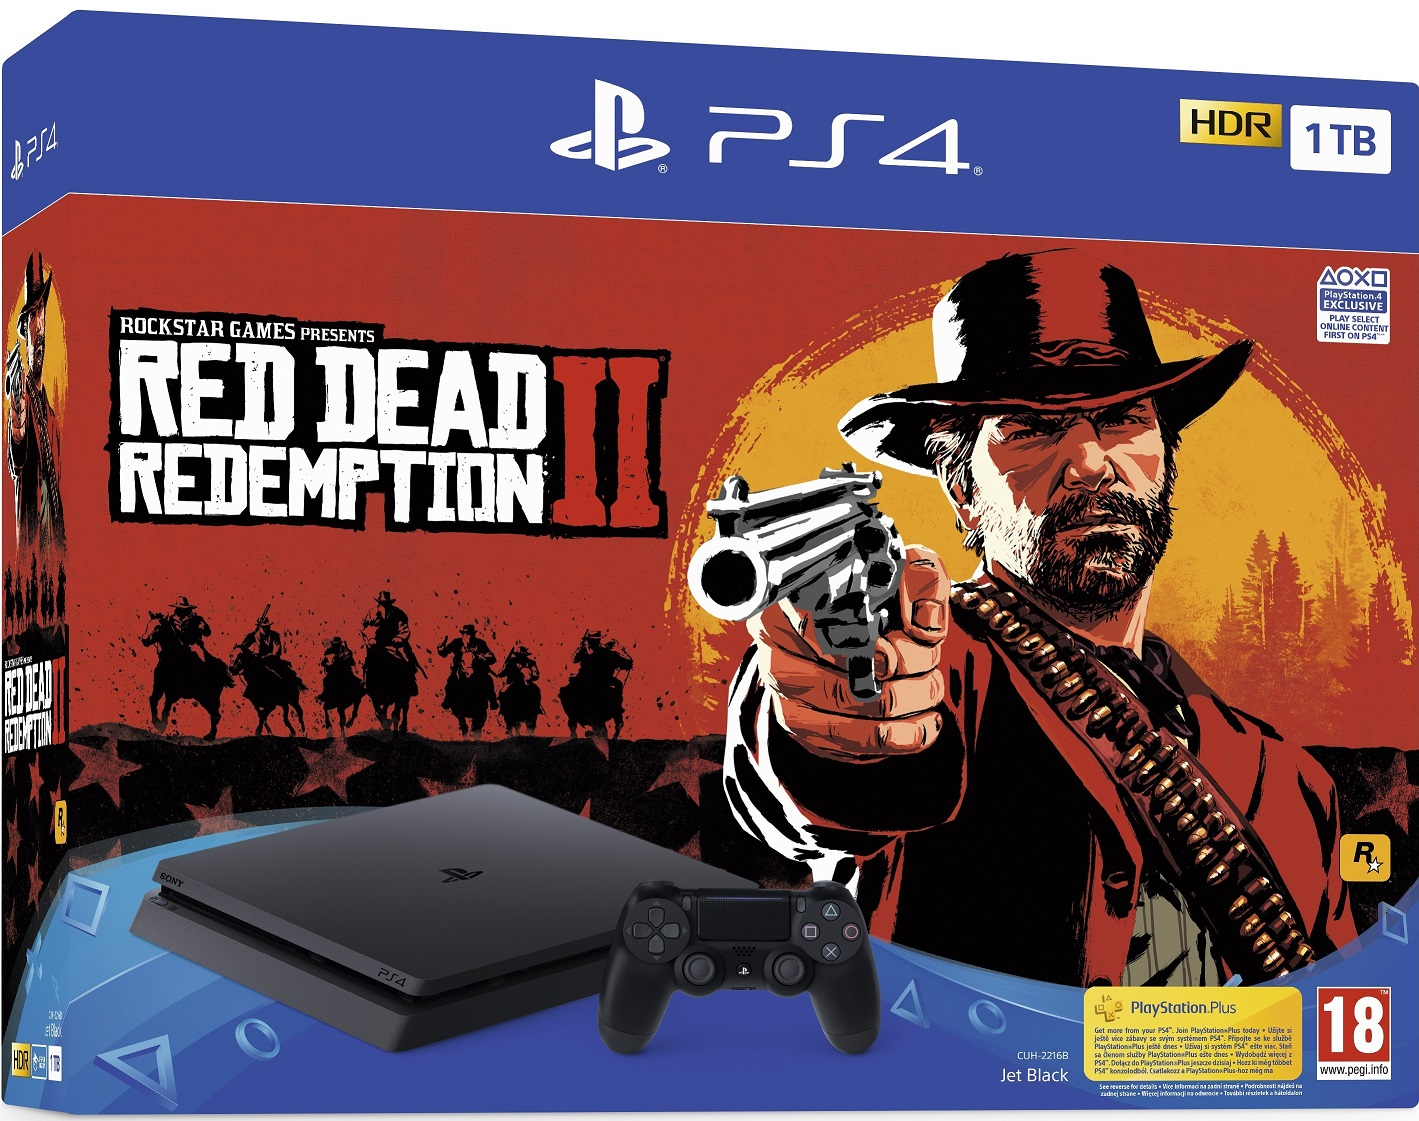 Sony PlayStation 4 Slim 1TB (PS4 Slim) + Red Dead Redemption 2 - PlayStation 4 Gépek